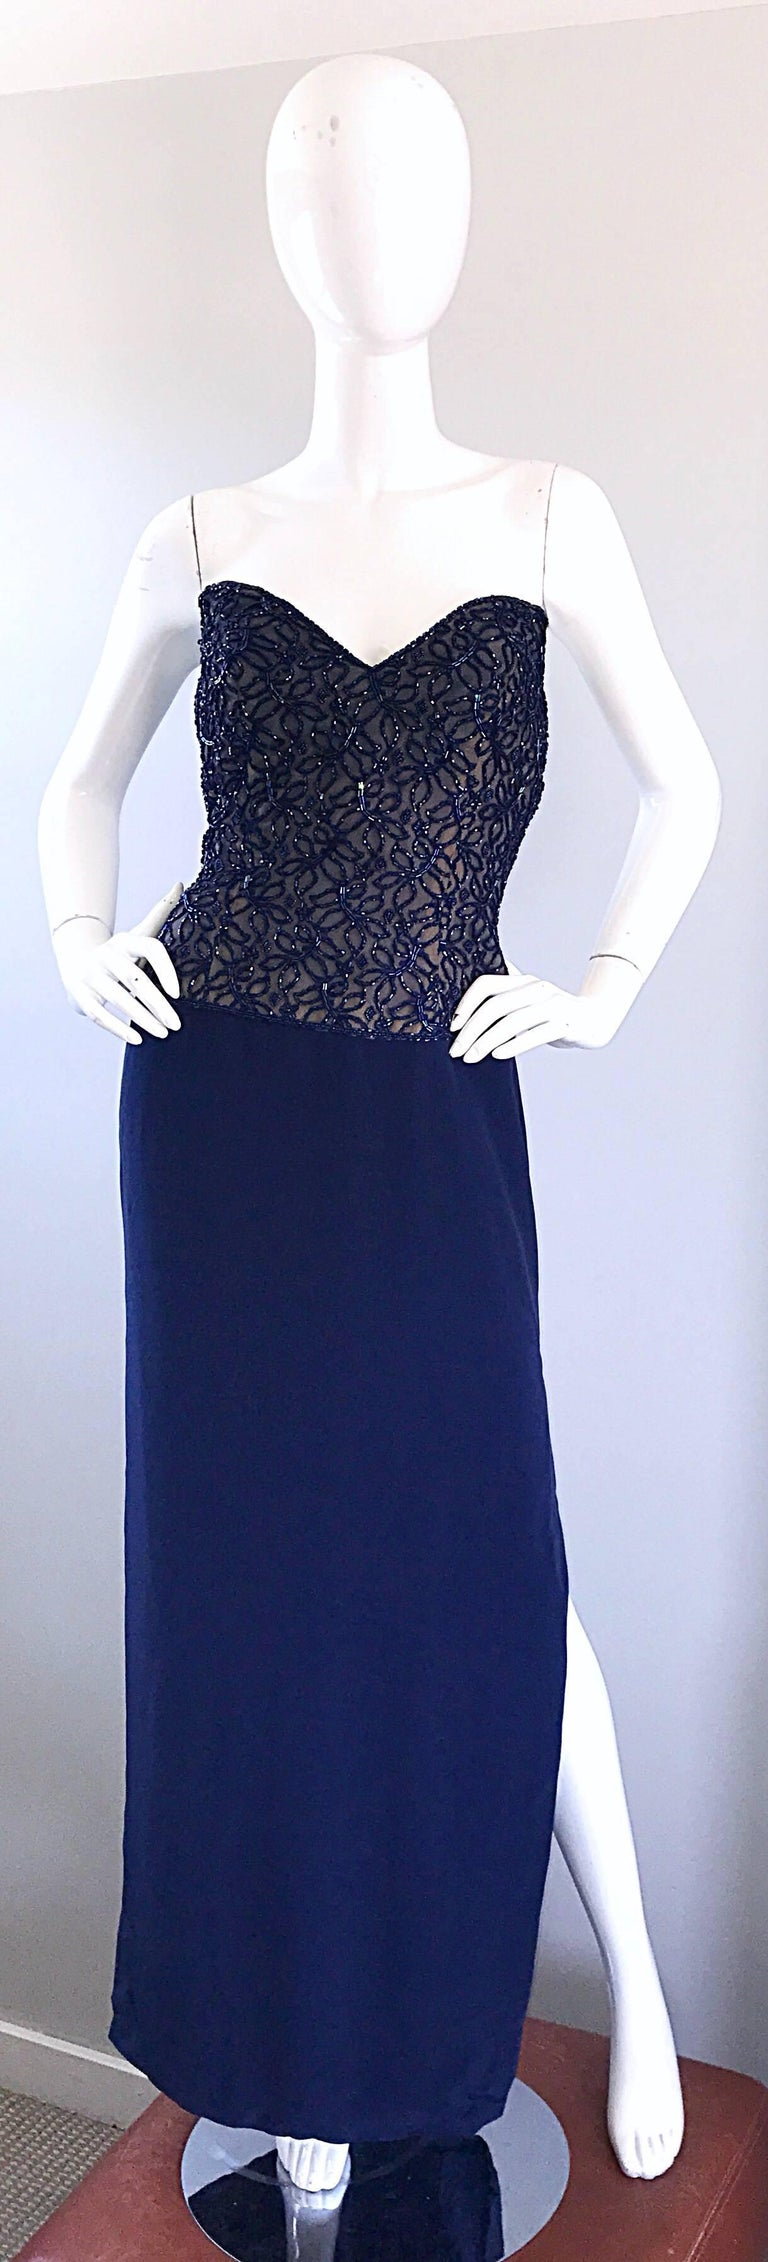 Stunning vintage BOB MACKIE navy blue strapless beaded and sequinened Grecian inspired evening dress! Features hundreds of beads sewn onto navy a navy mesh, with a boned nude underlay. Sexy slit reveals just the right amount of skin. Hidden zipper